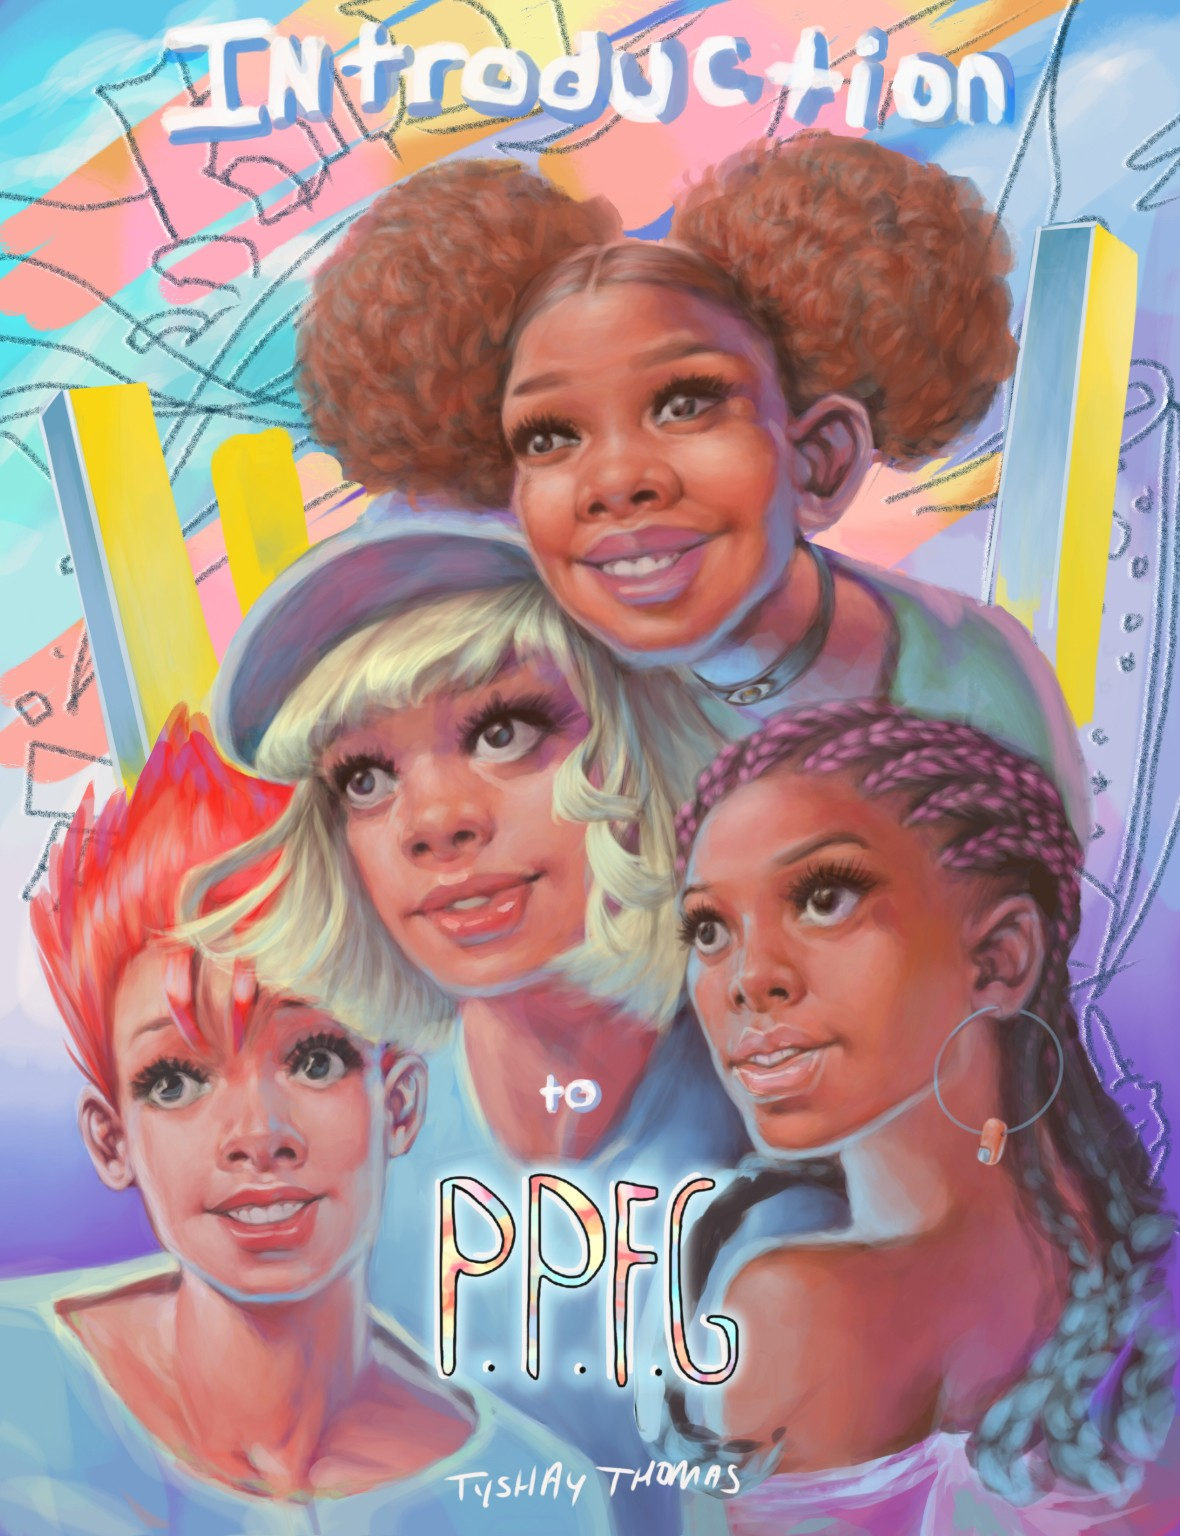 P.P.F.G. is a world building and entertainment project that utilizes different forms of presentation.